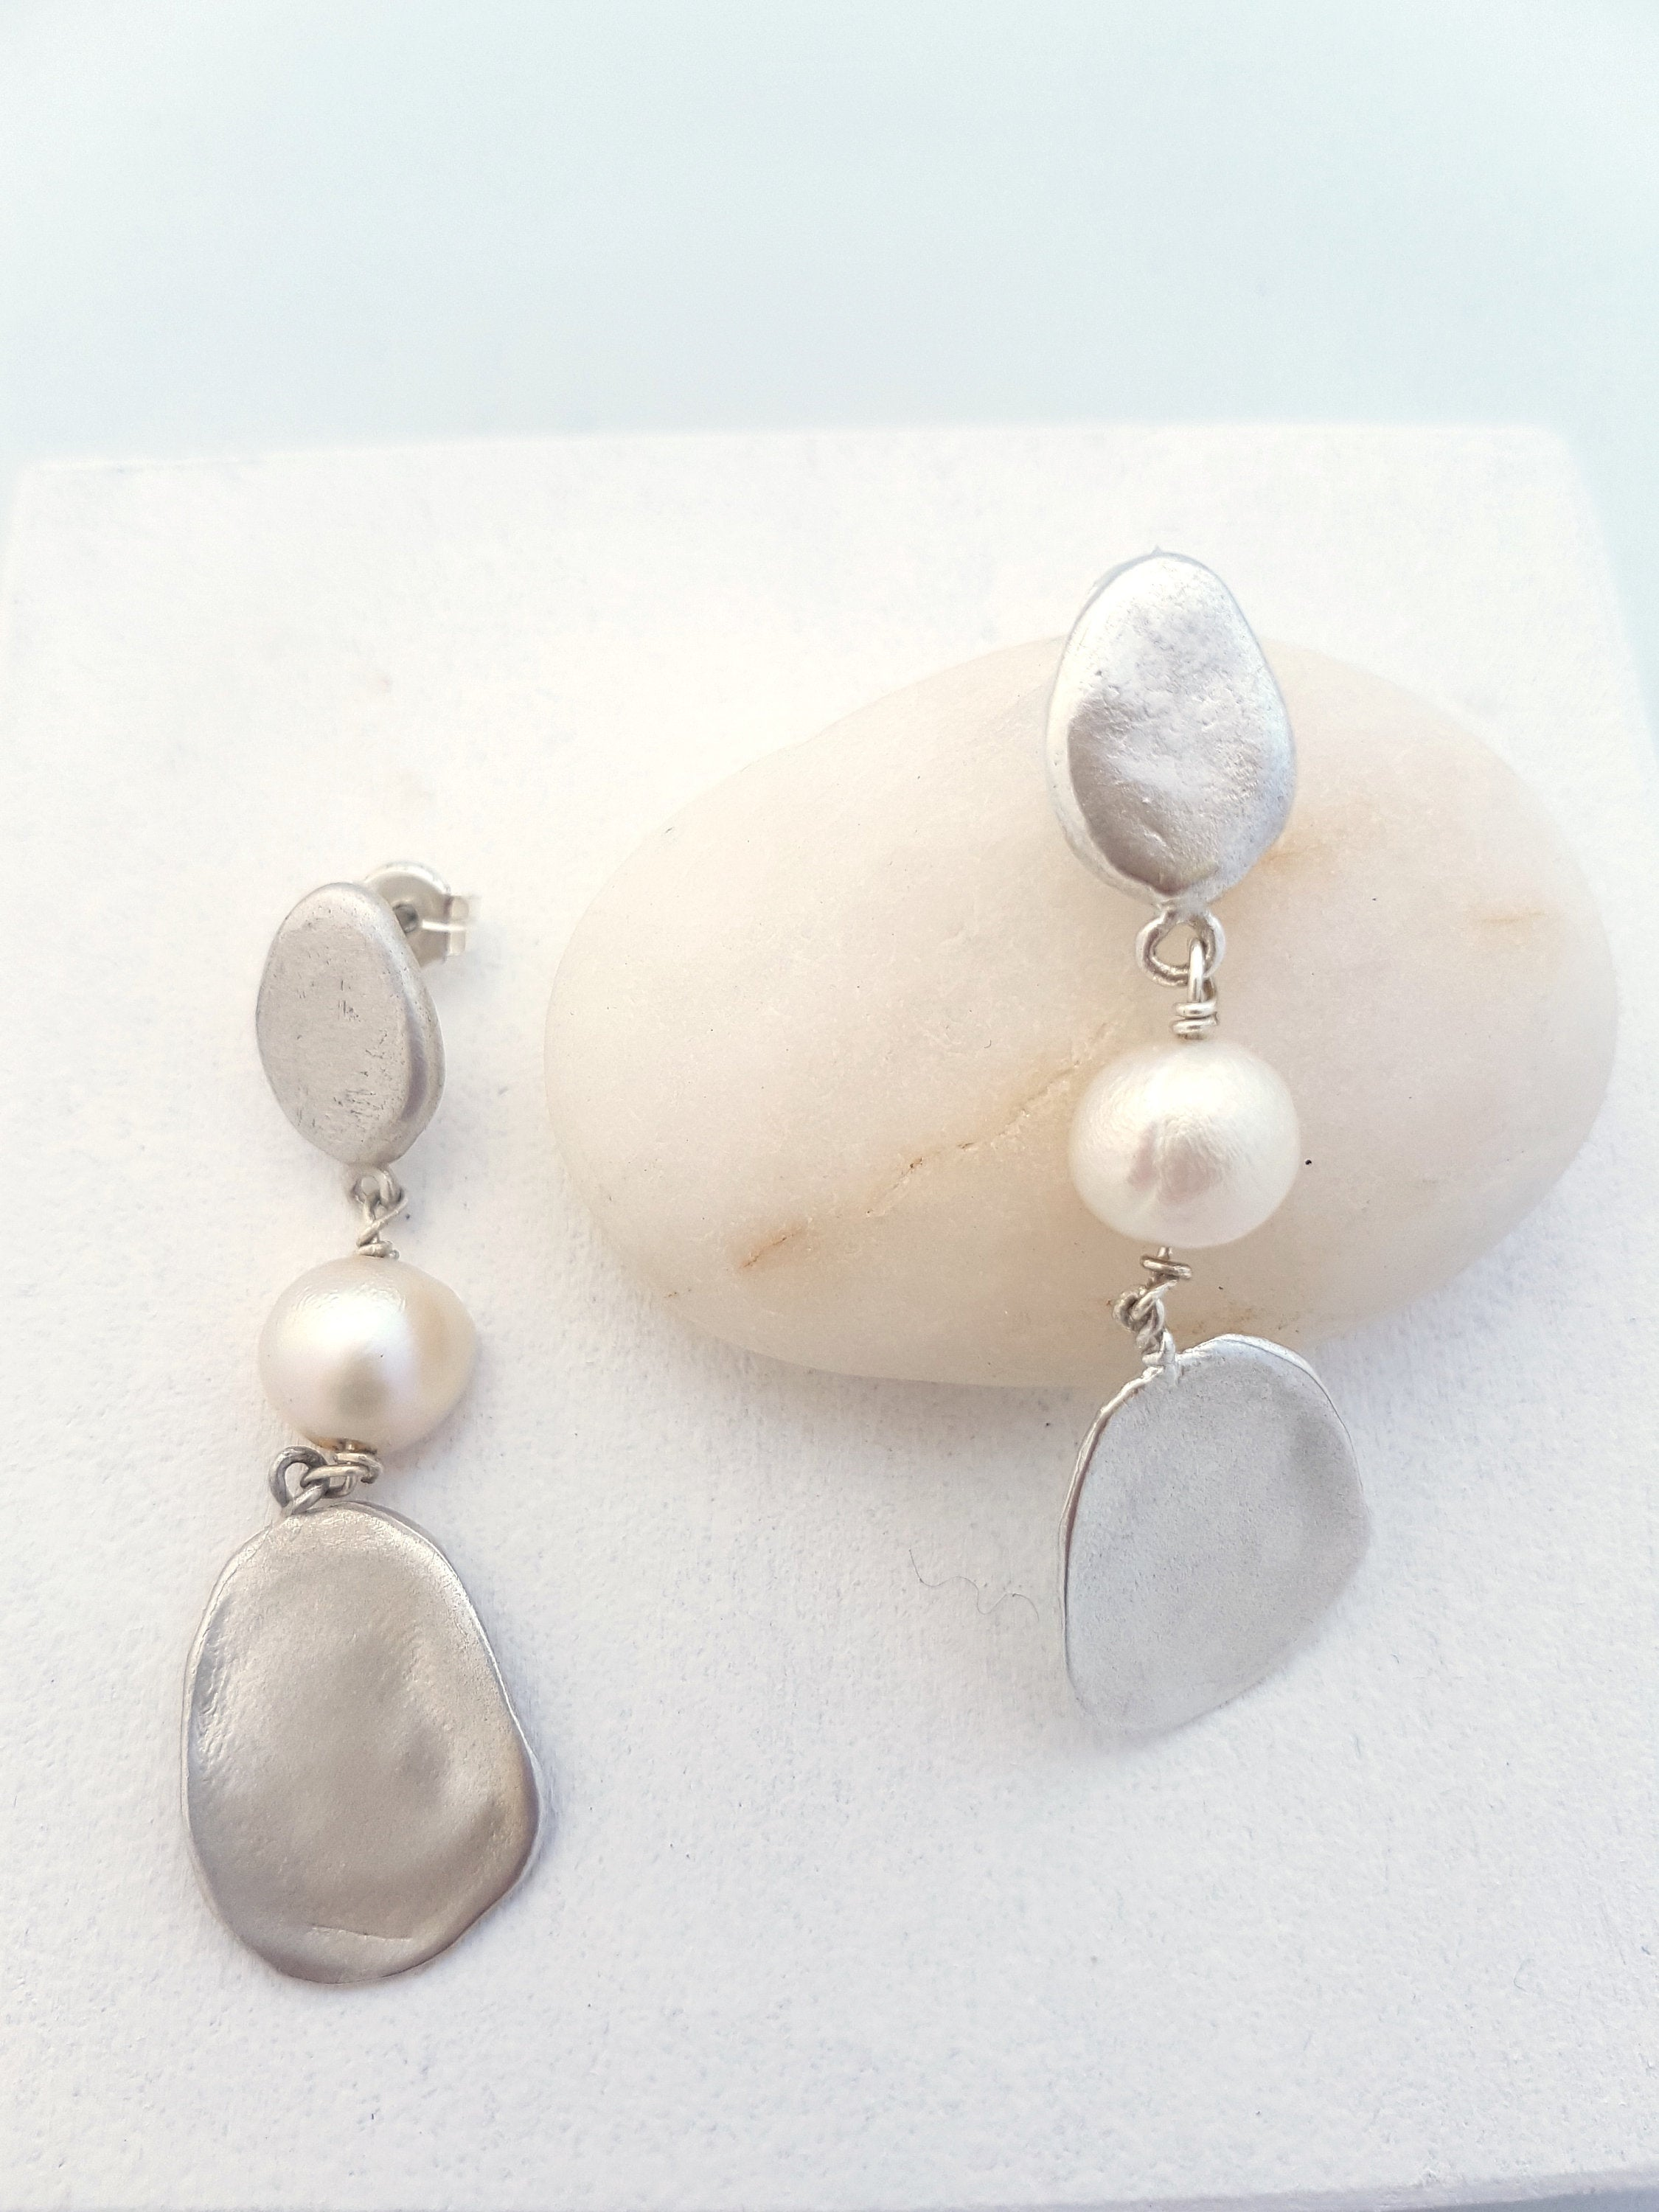 modern pearl earrings in sterling silver - contemporary pearl earrings for her